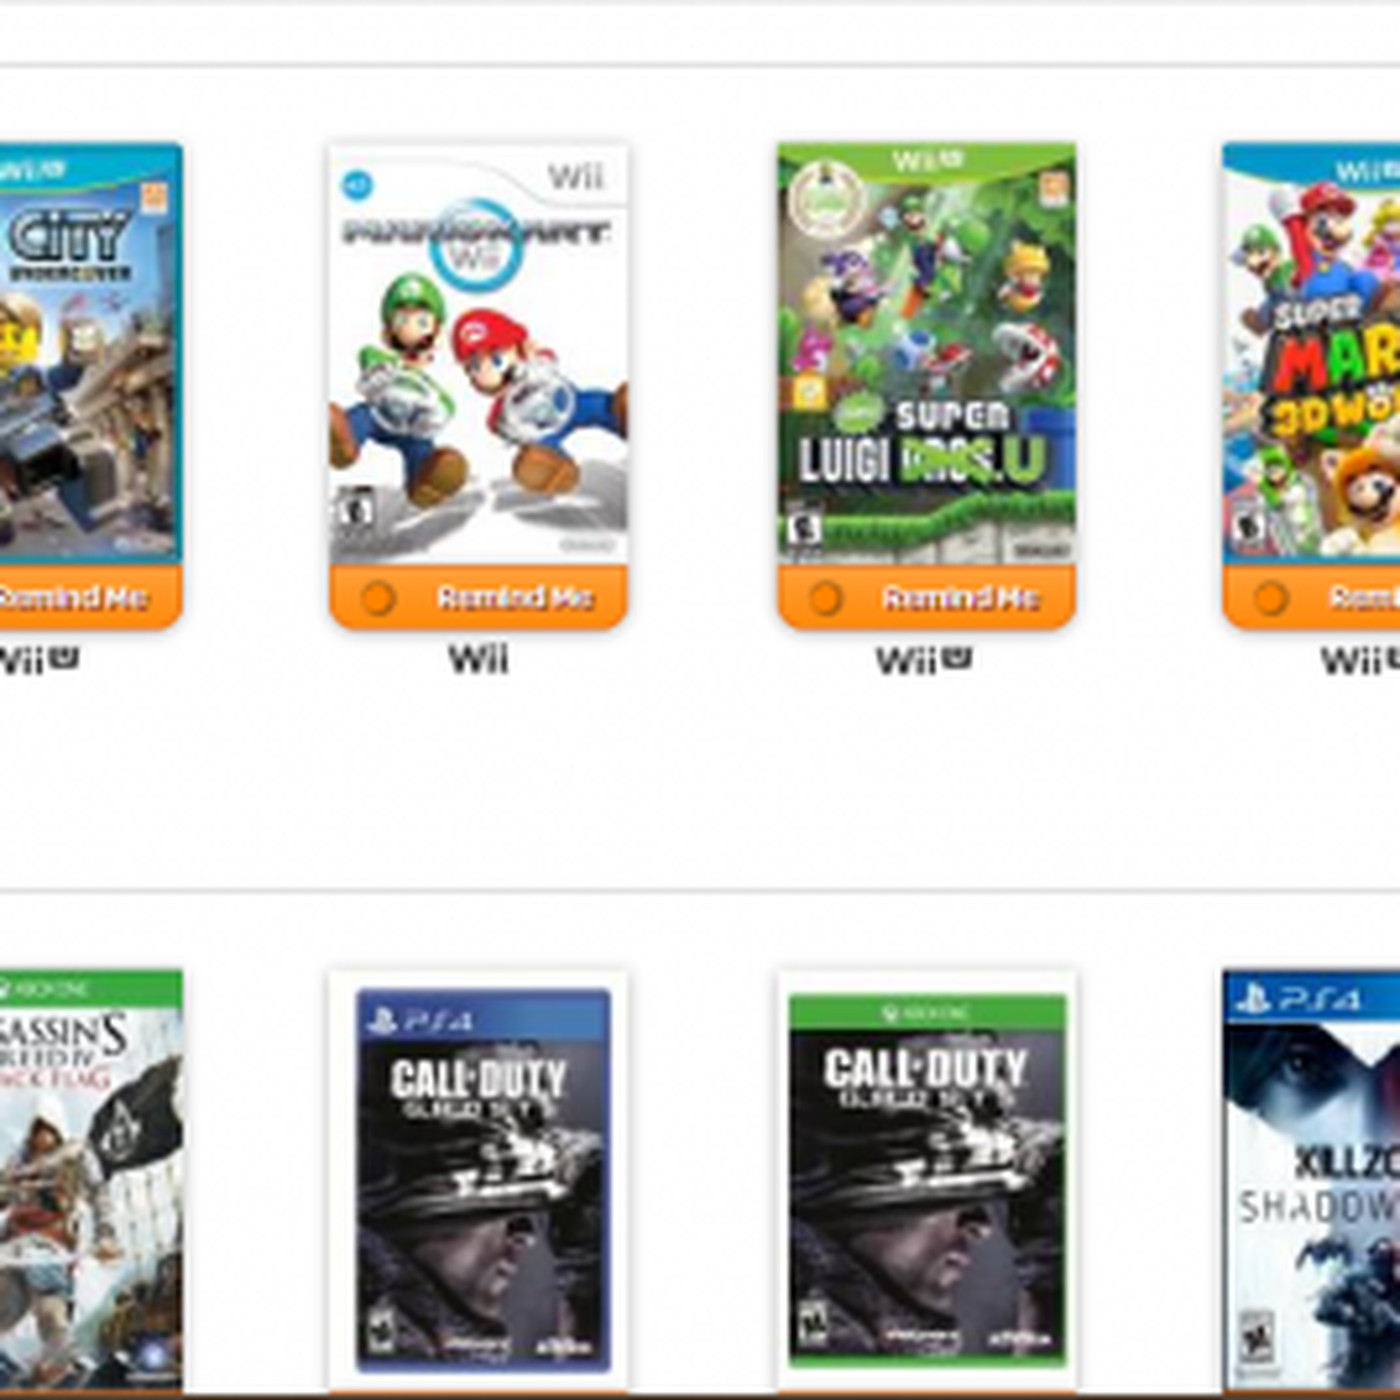 redbox online rental service to begin offering wii u ps4 and xbox